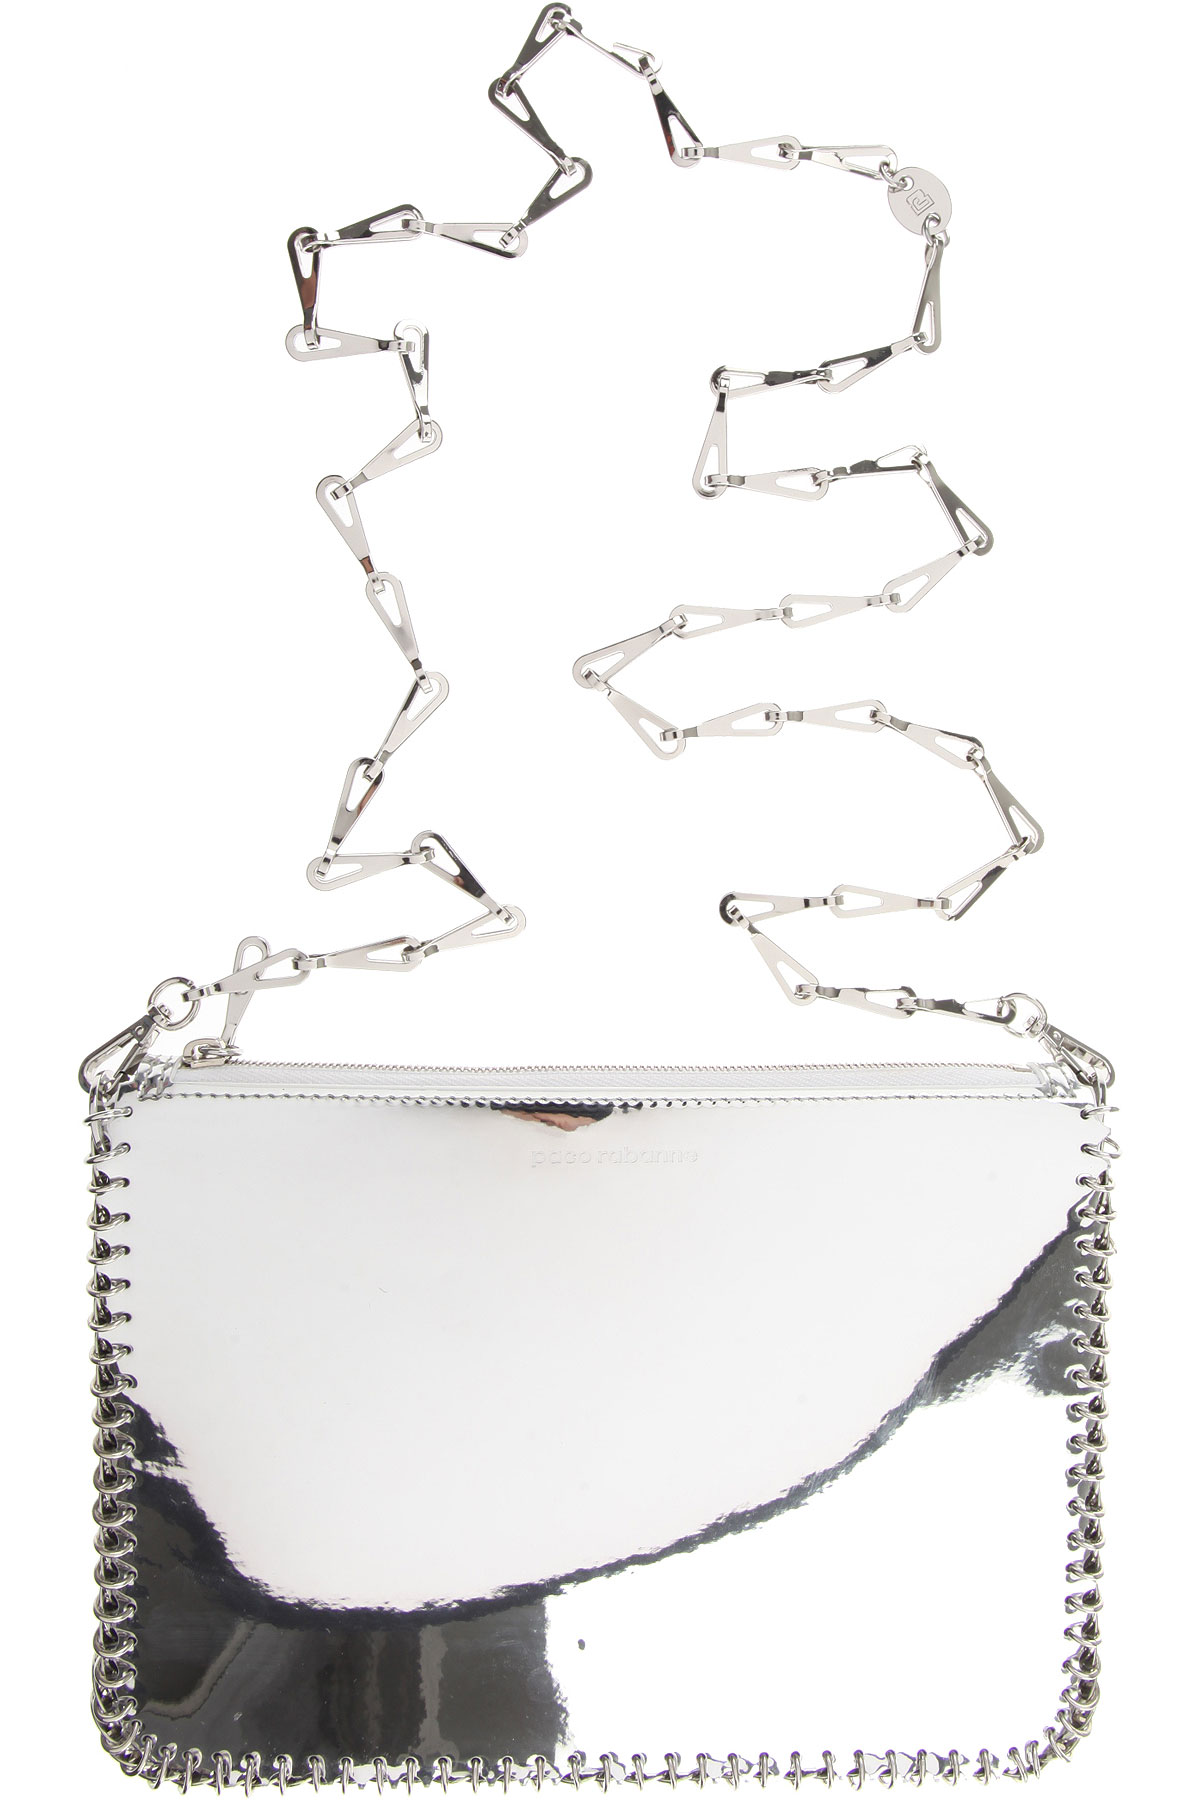 Image of Paco Rabanne Shoulder Bag for Women, Silver Mirror, Leather, 2017